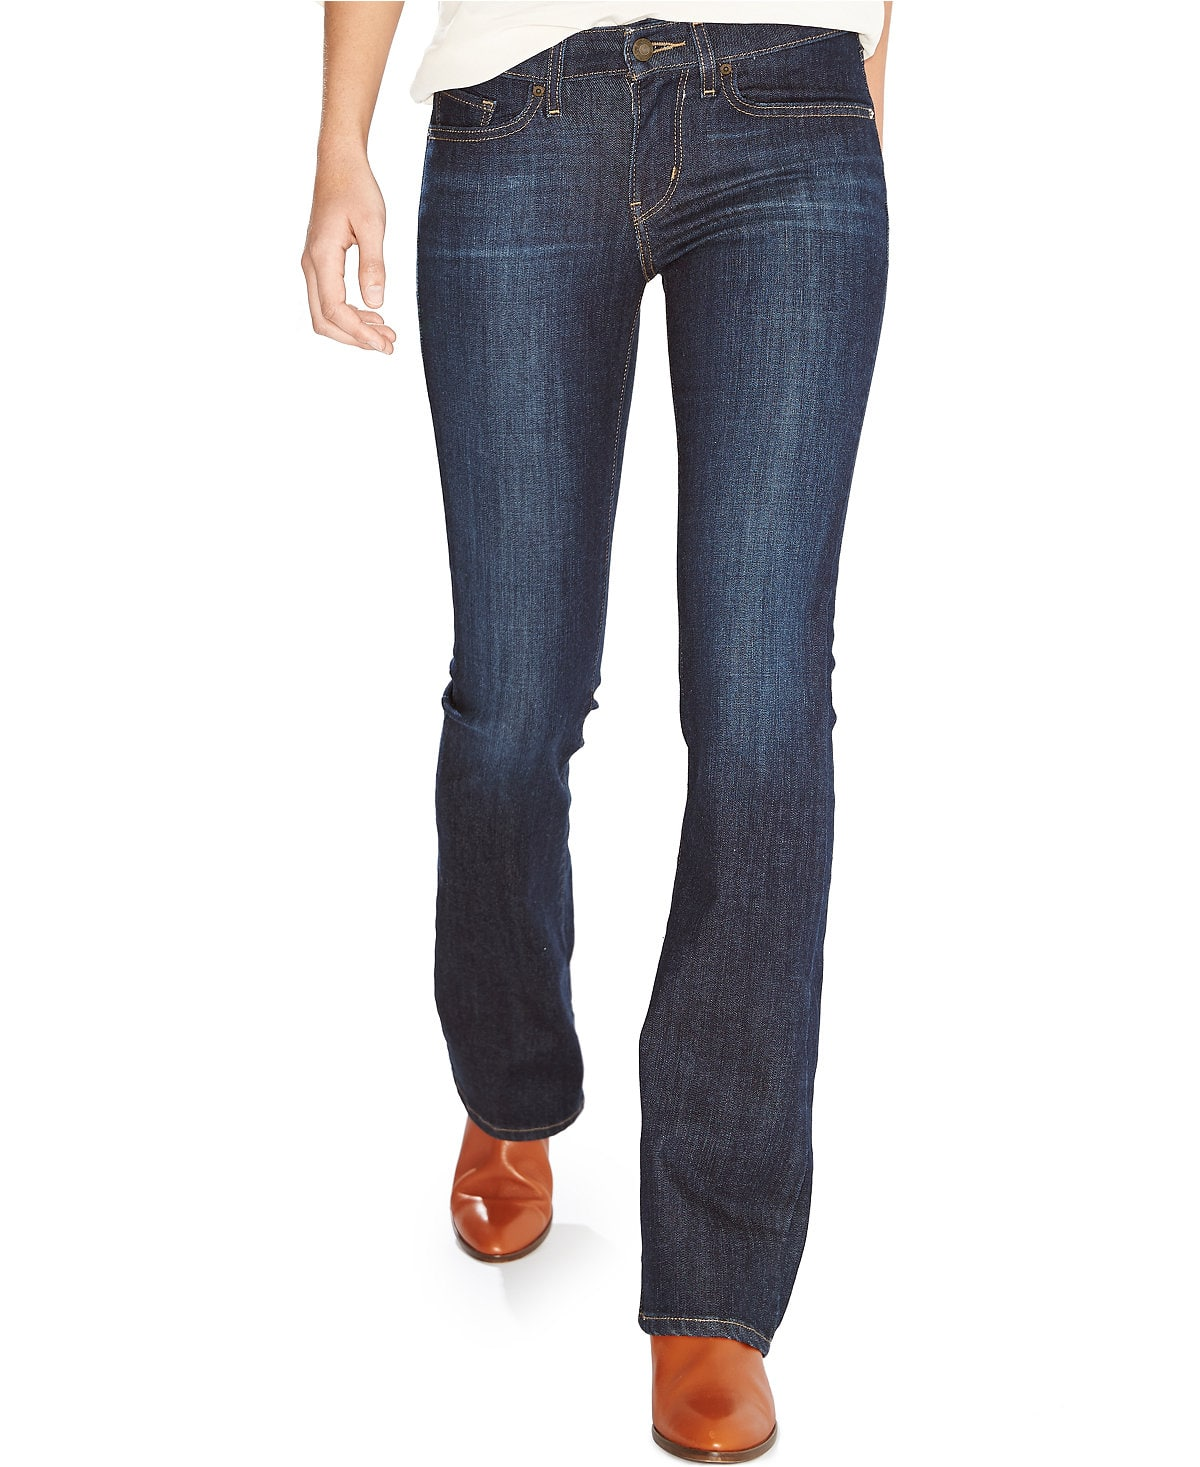 Women's Levis Jeans: 712 Slim-Fit $10, 715 Bootcut $10, Other styles from $12 + $3 shipping